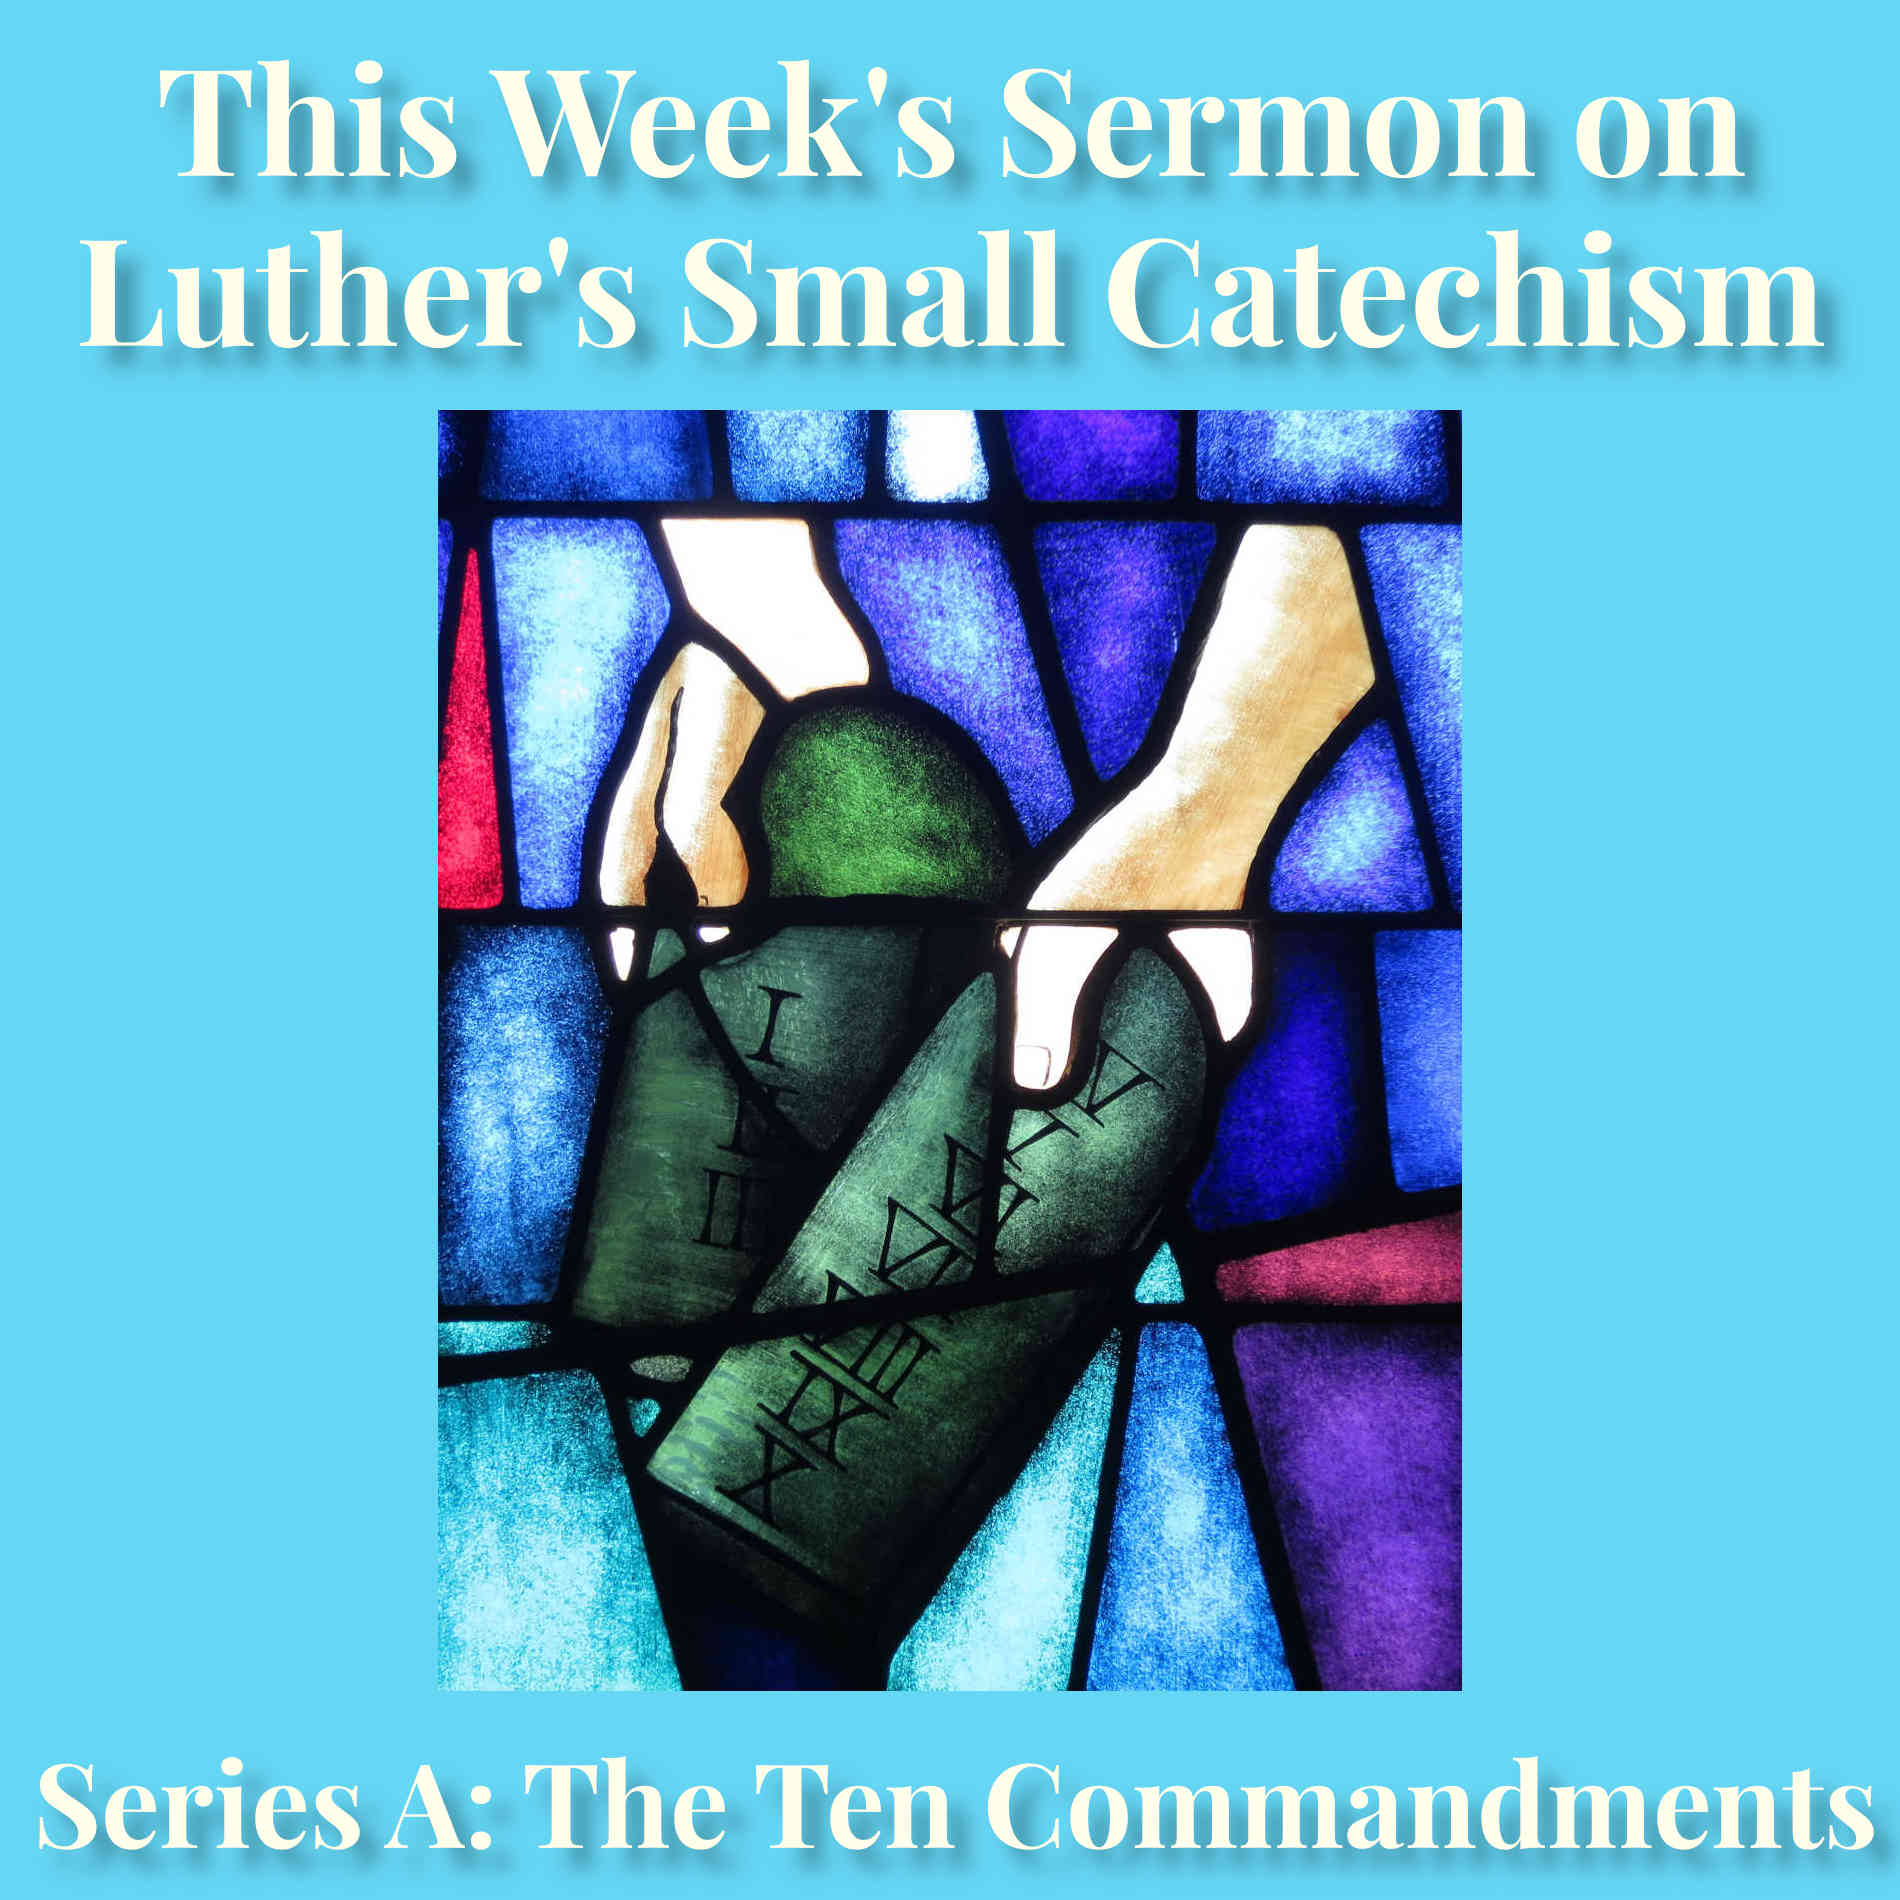 Luther's Small Catechism: Series A – The Ten Commandments